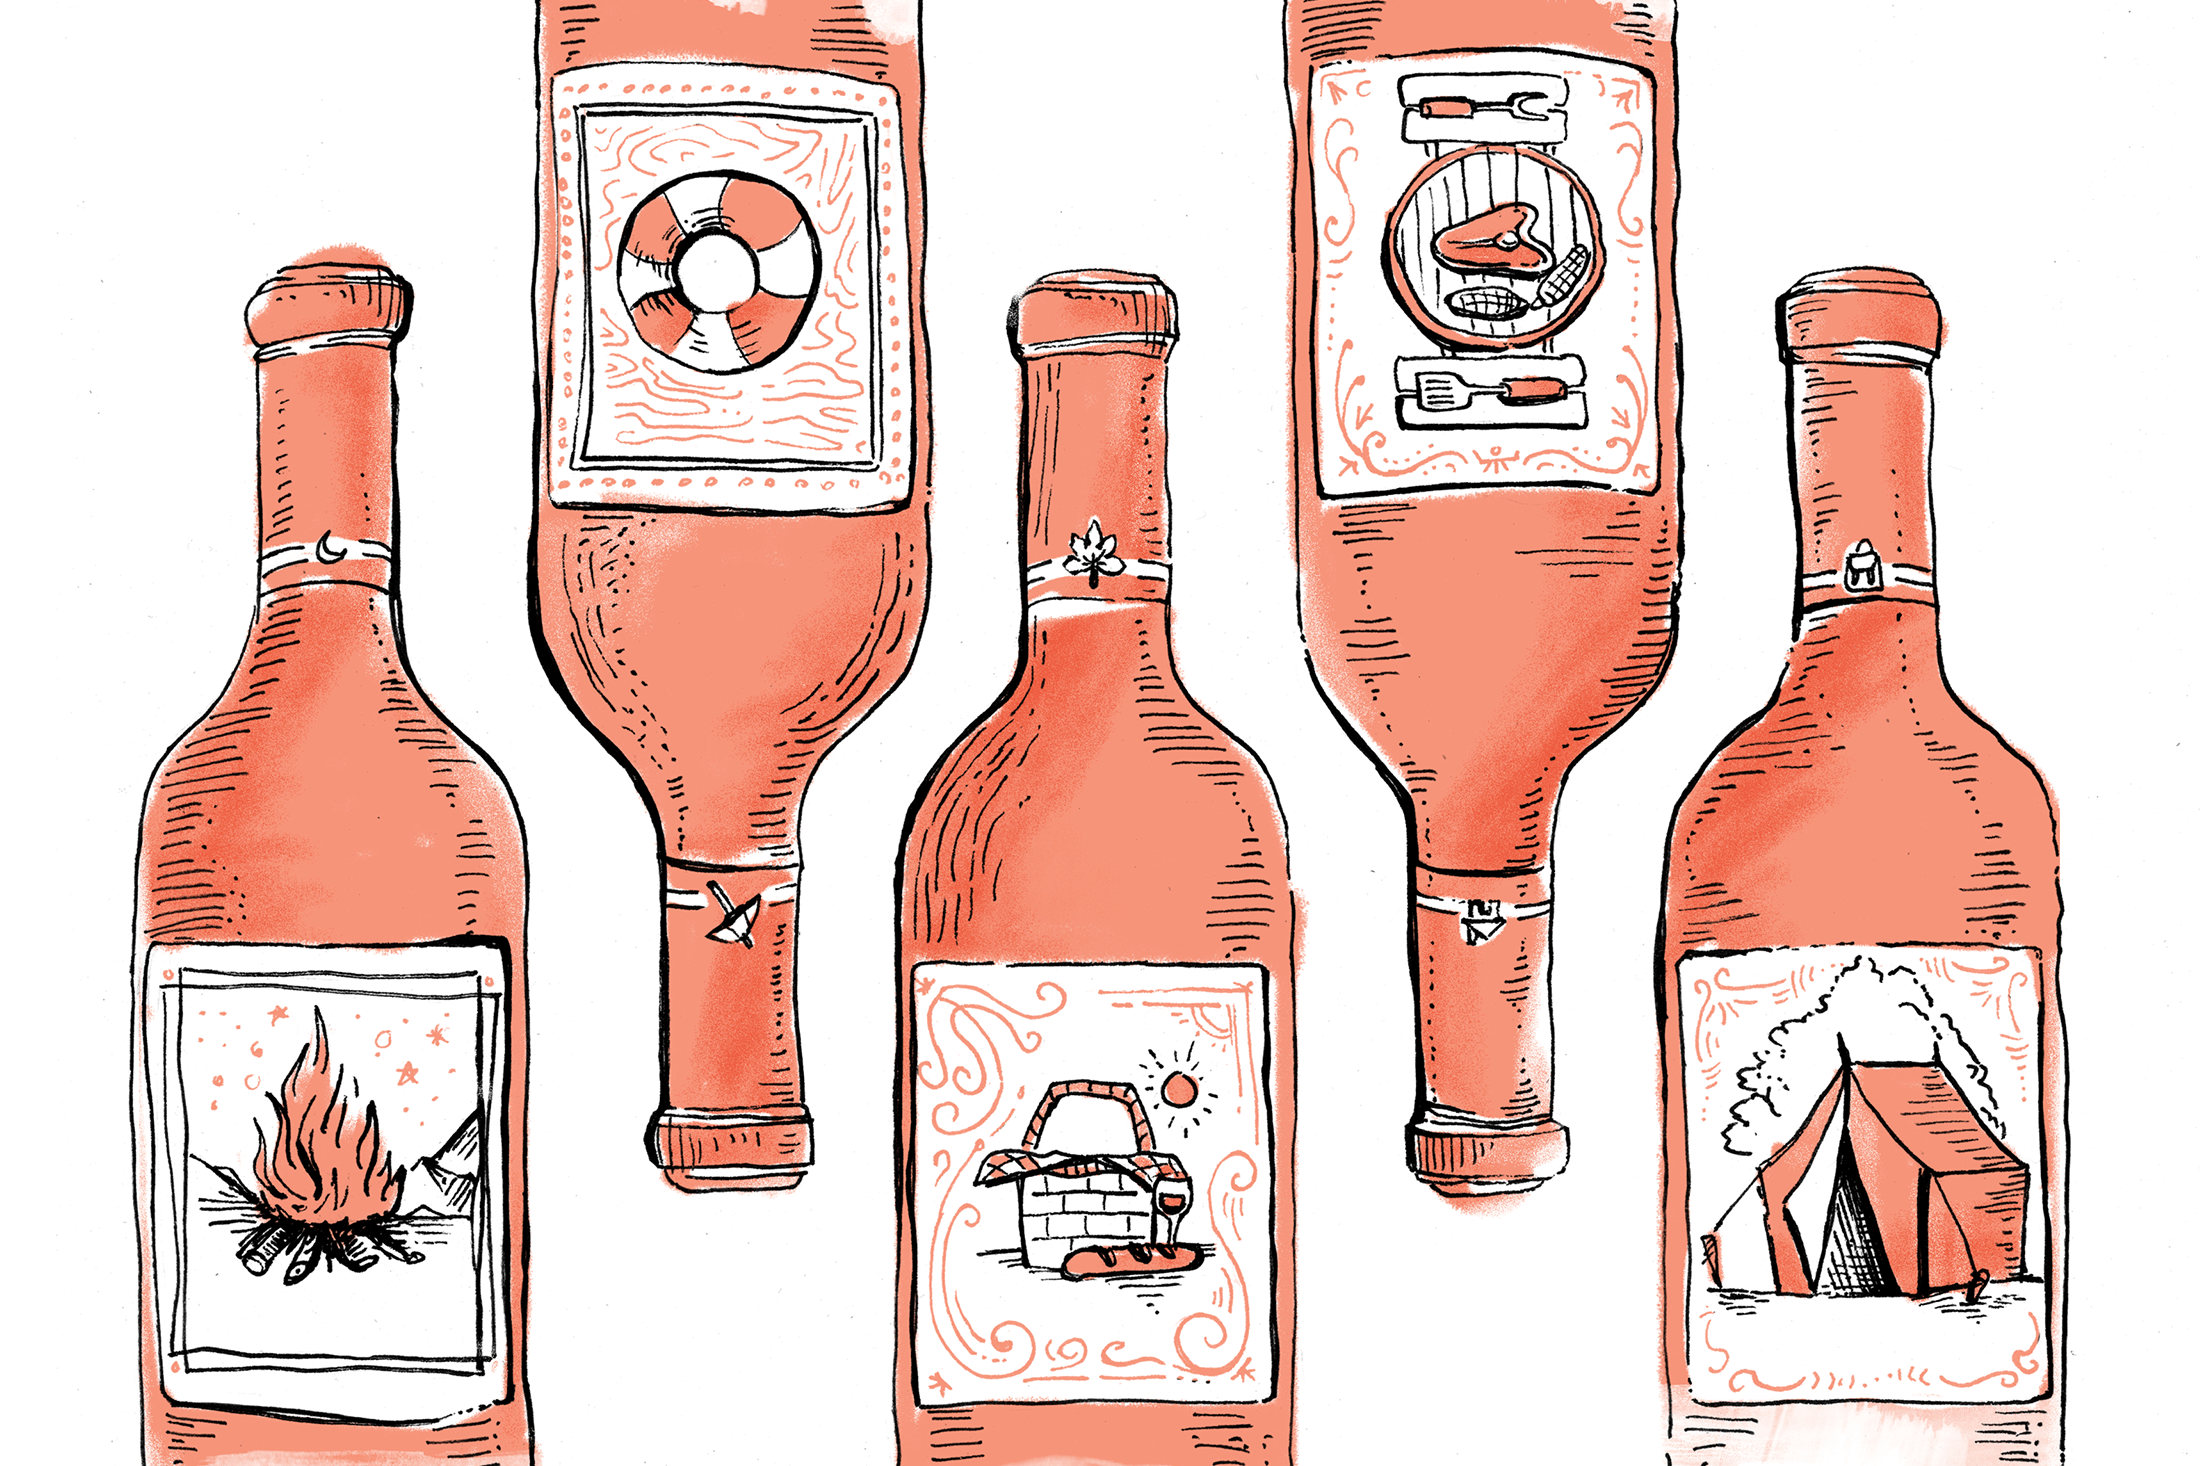 Hand drawn illustration of five wine bottles with each one's label showing a different summer activity.